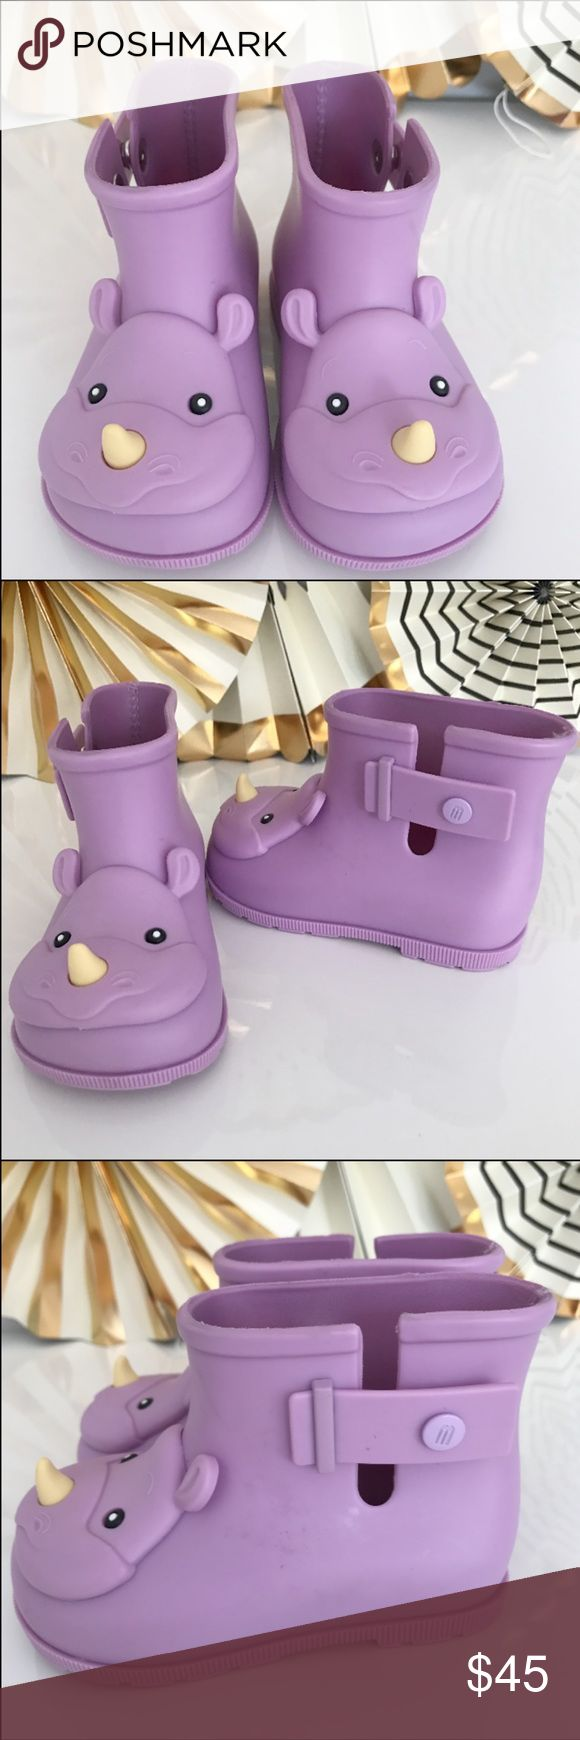 "Mini Melissa Rhino Sugar Rain Boots 💜 Mini Melissa Sugar rain boots with rhino motif.🐾🦏 Sustainably made from MELFLEX™ nontoxic, hypoallergenic, cruelty-free thermoplastic that molds comfortably to feet. Subtly scented with their Melissa signature tutti-frutti fragrance. Snap-closure at sides aids in easy on and off. Cushioned footbed.  Textured outsole for traction. ""Sugar"" is made in Brazil. Size 7 Brand new sample without a box. Mini Melissa Shoes Rain & Snow Boots"